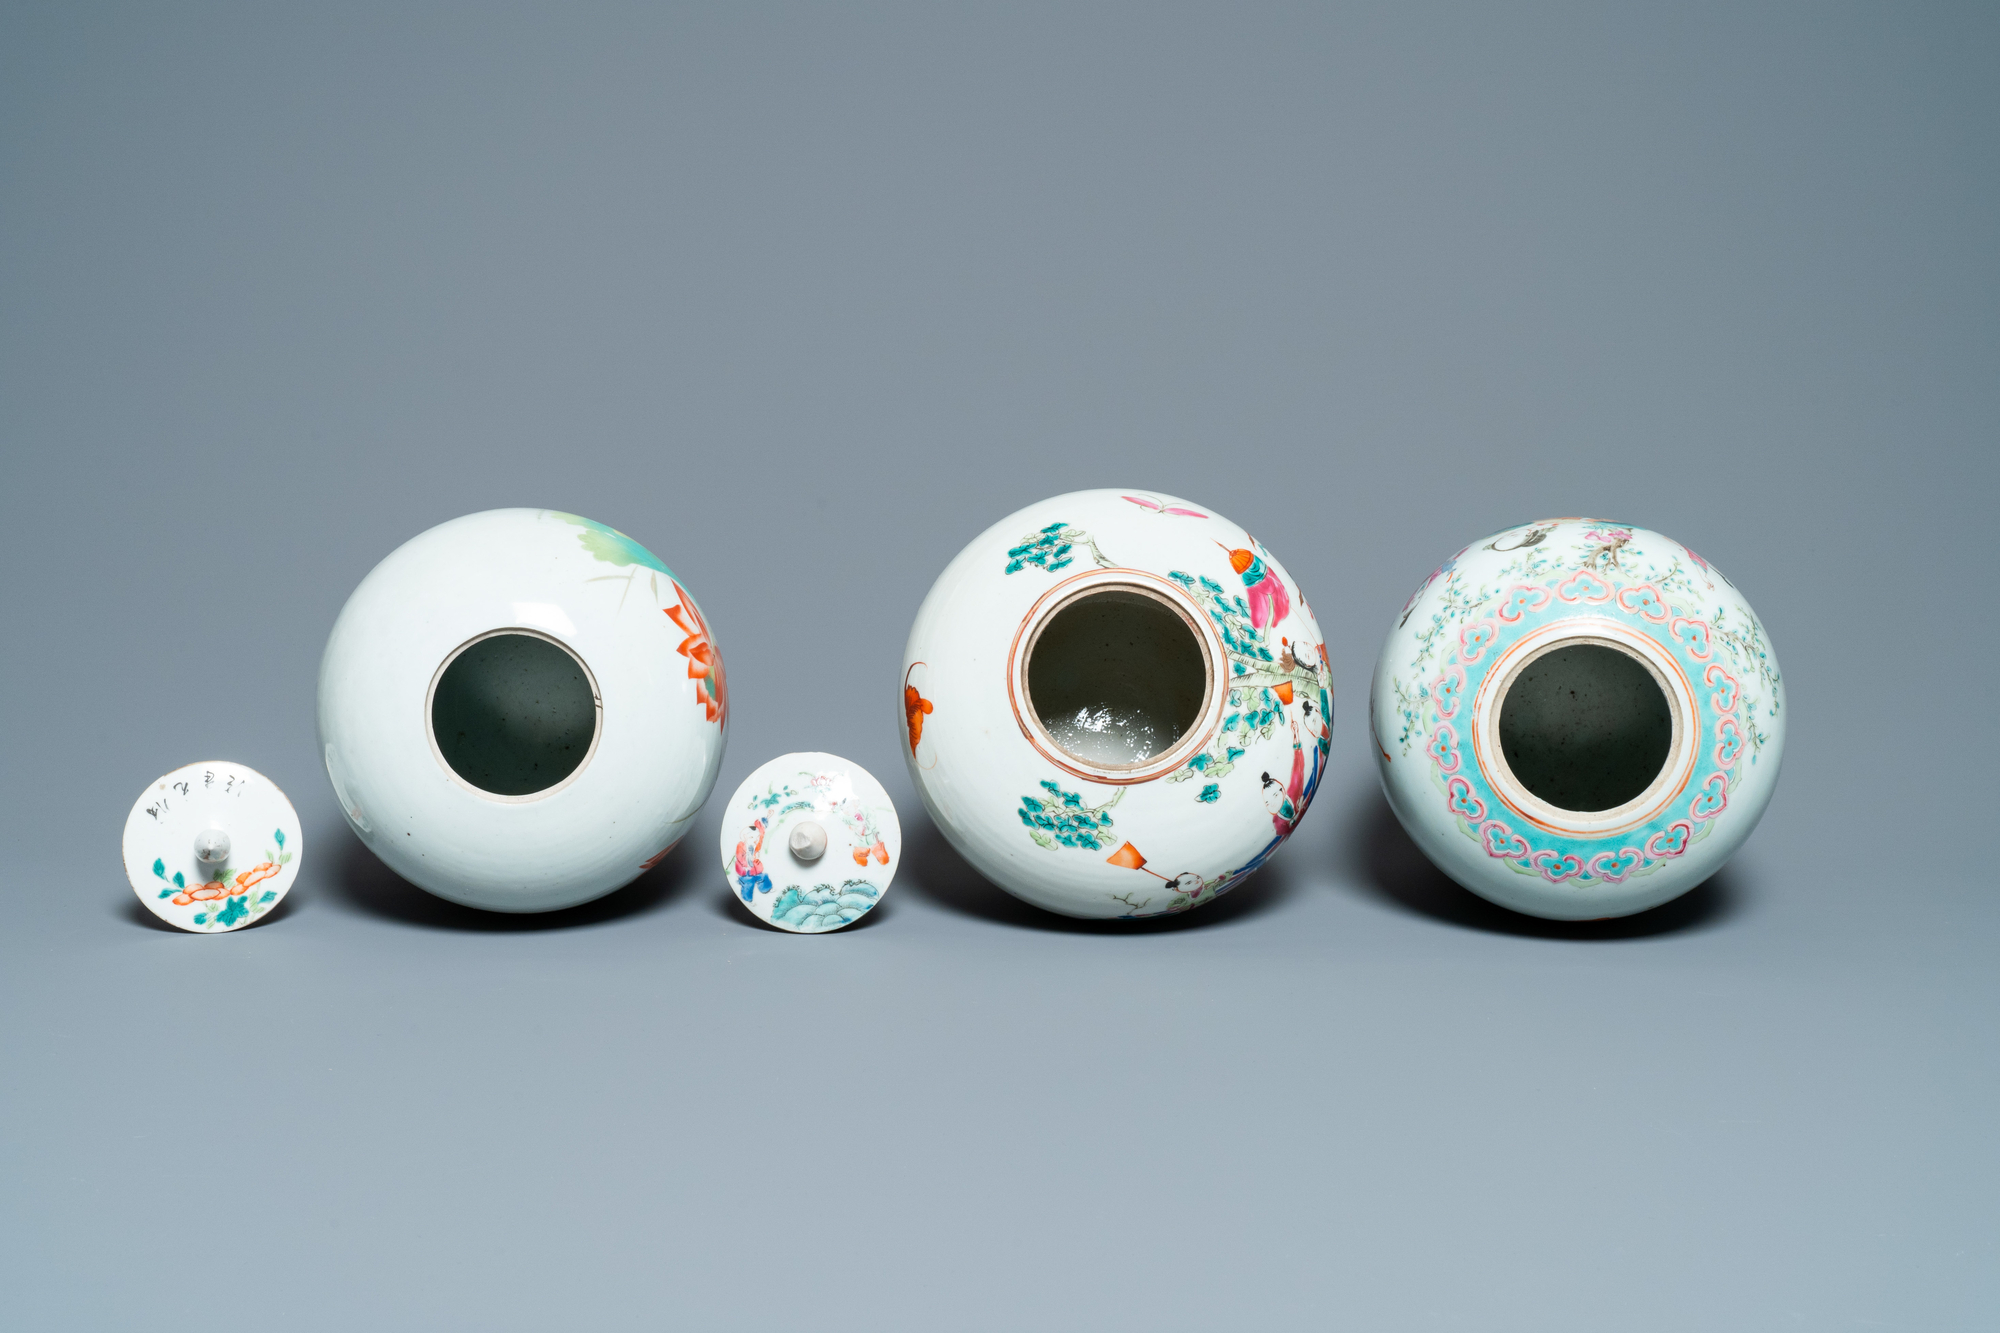 Six Chinese famille rose and verte vases, 19/20th C. - Image 6 of 13